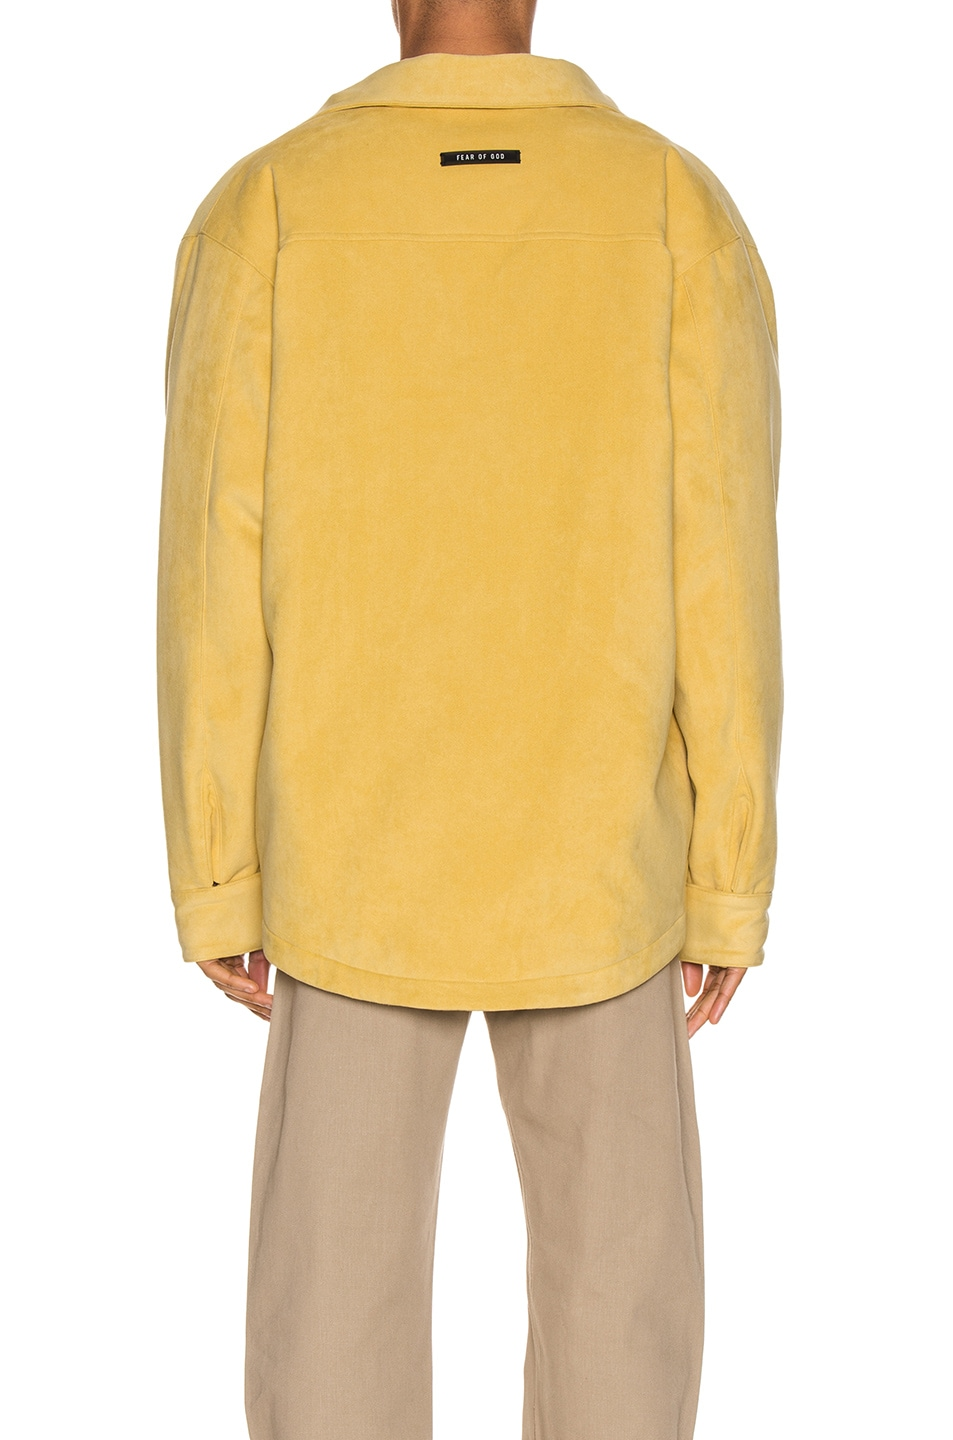 Image 4 of Fear of God Suede Shirt Jacket in Garden Glove Yellow